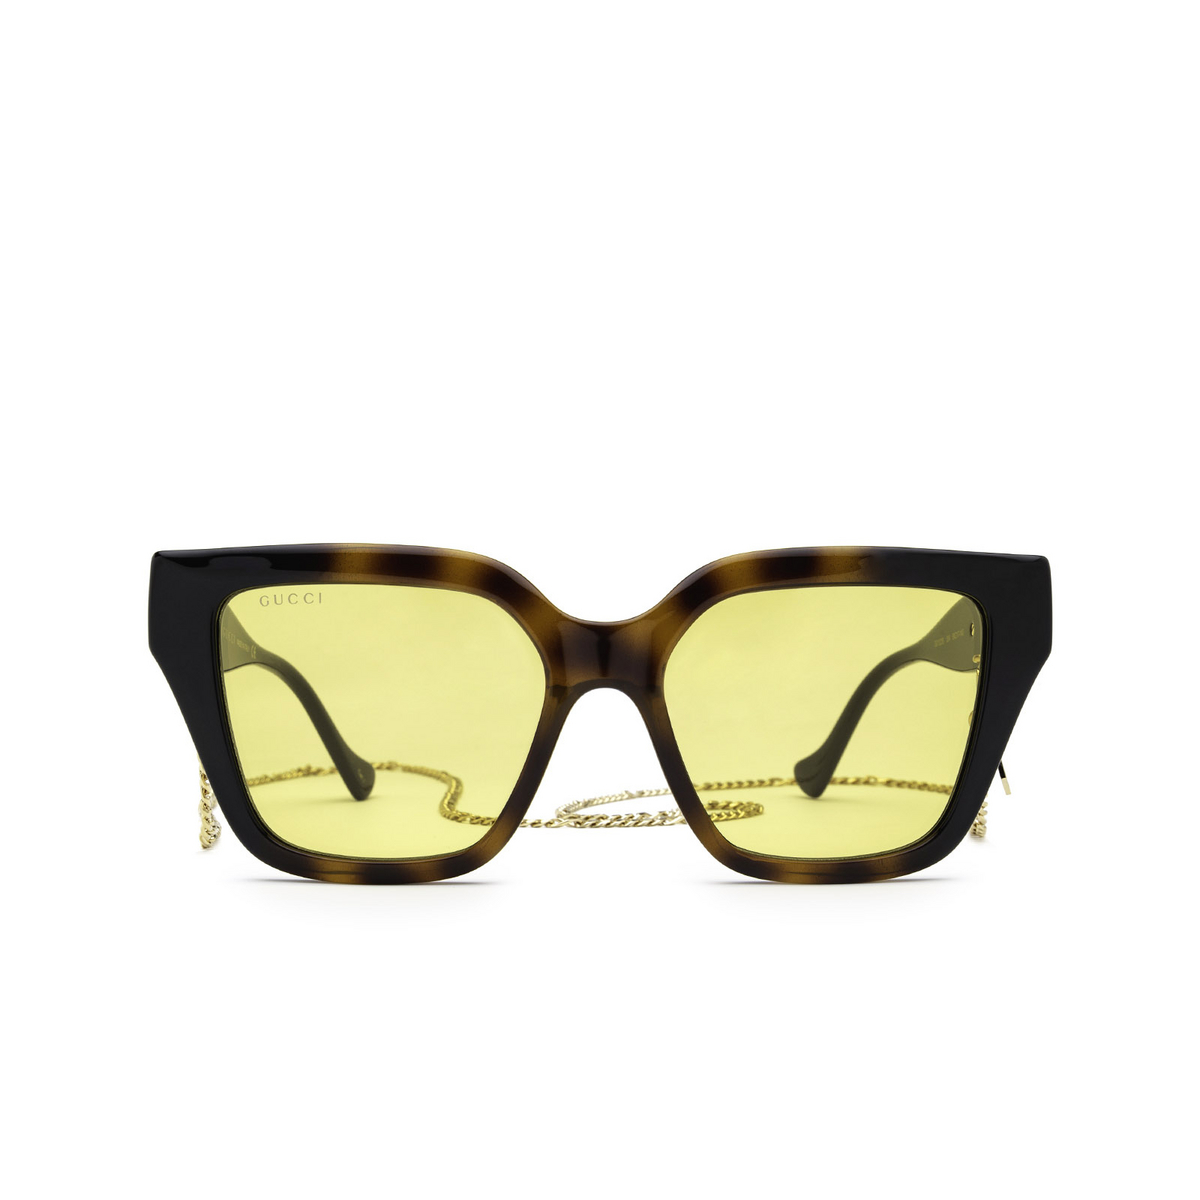 Gucci® Butterfly Sunglasses: GG1023S color Havana & Black 004 - front view.